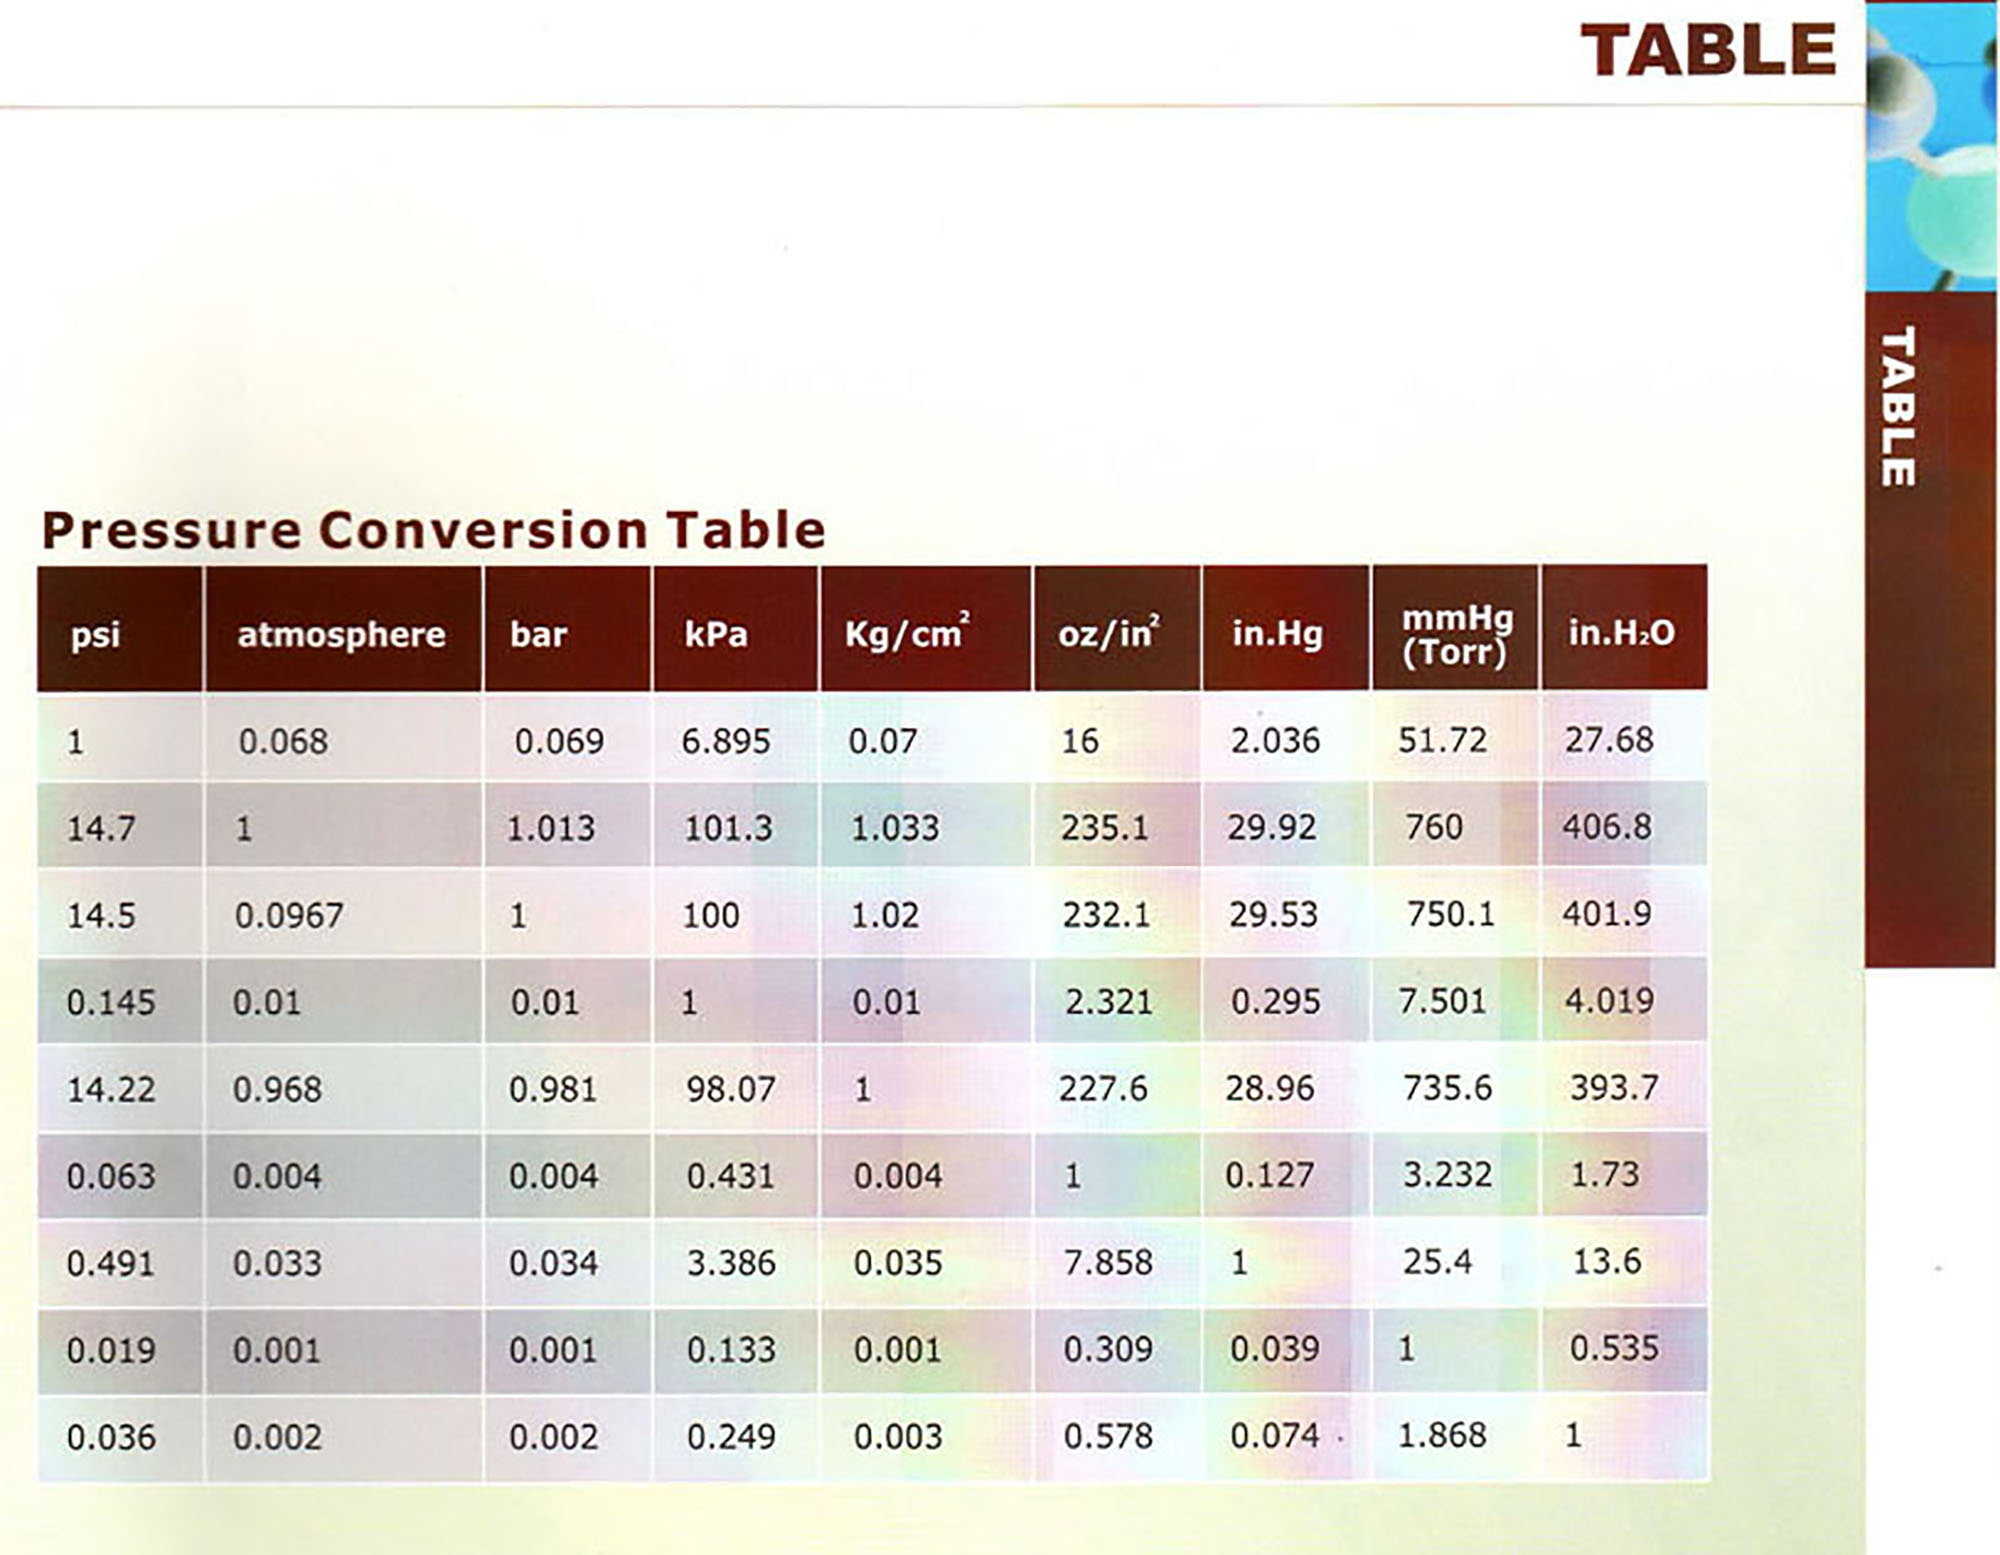 PREASSURE_CONVERSION_TABLE.jpg